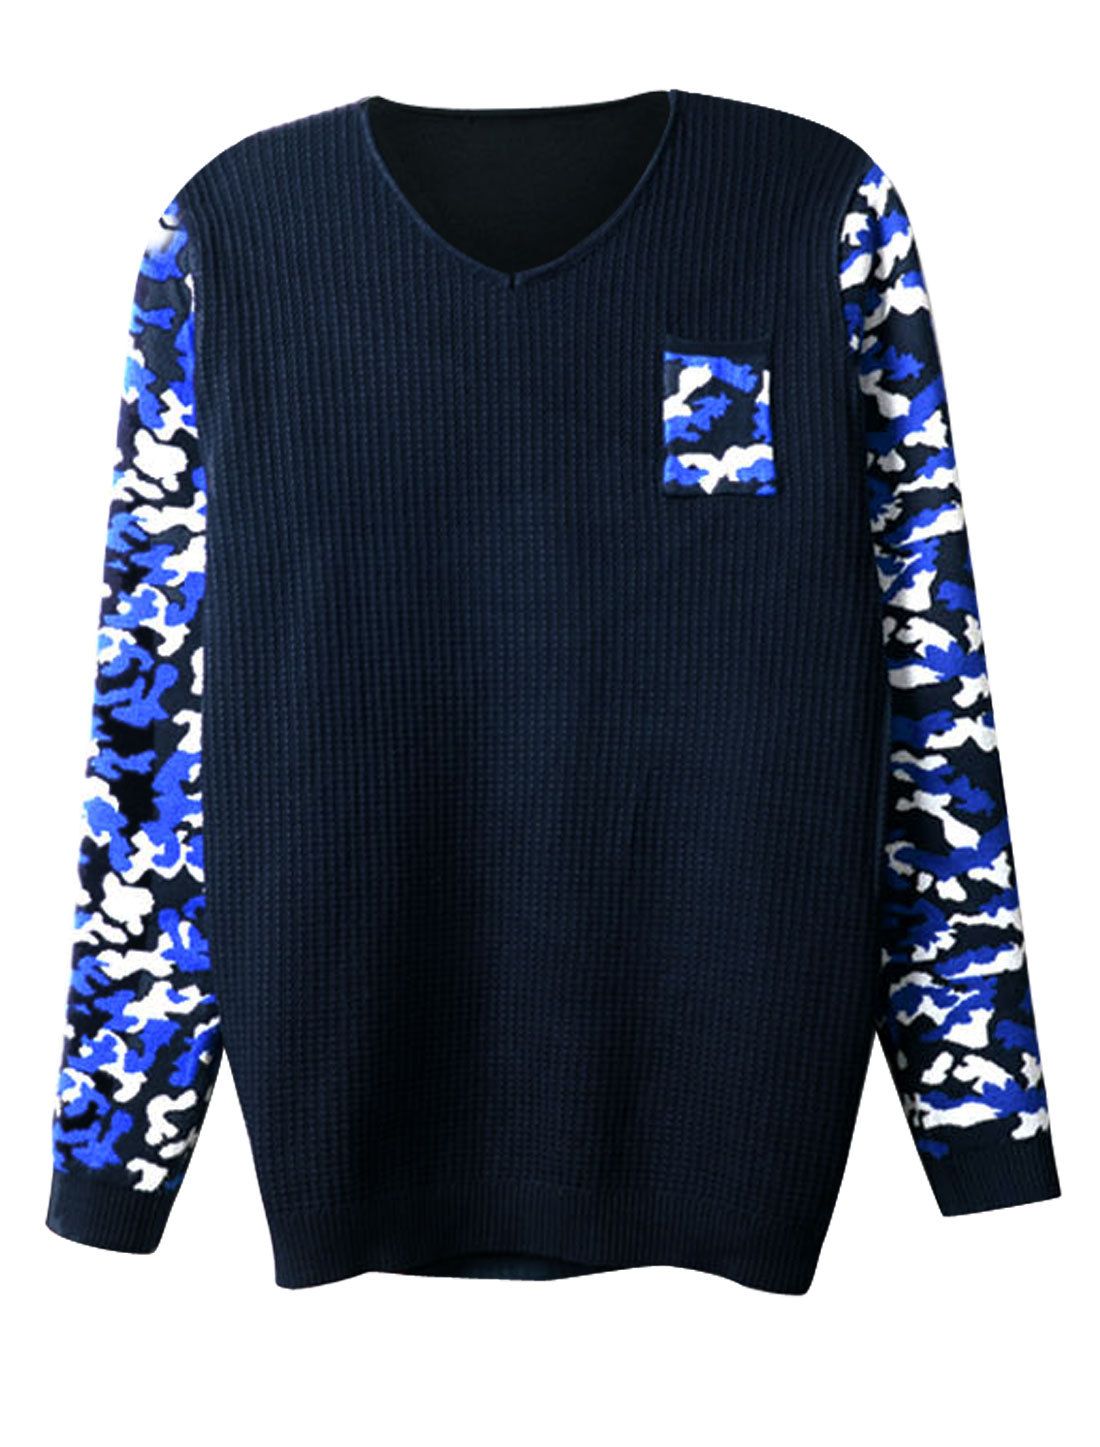 Men Contrast Long Sleeves Pullover Camo Print Fashion Sweater Blue Navy Blue S